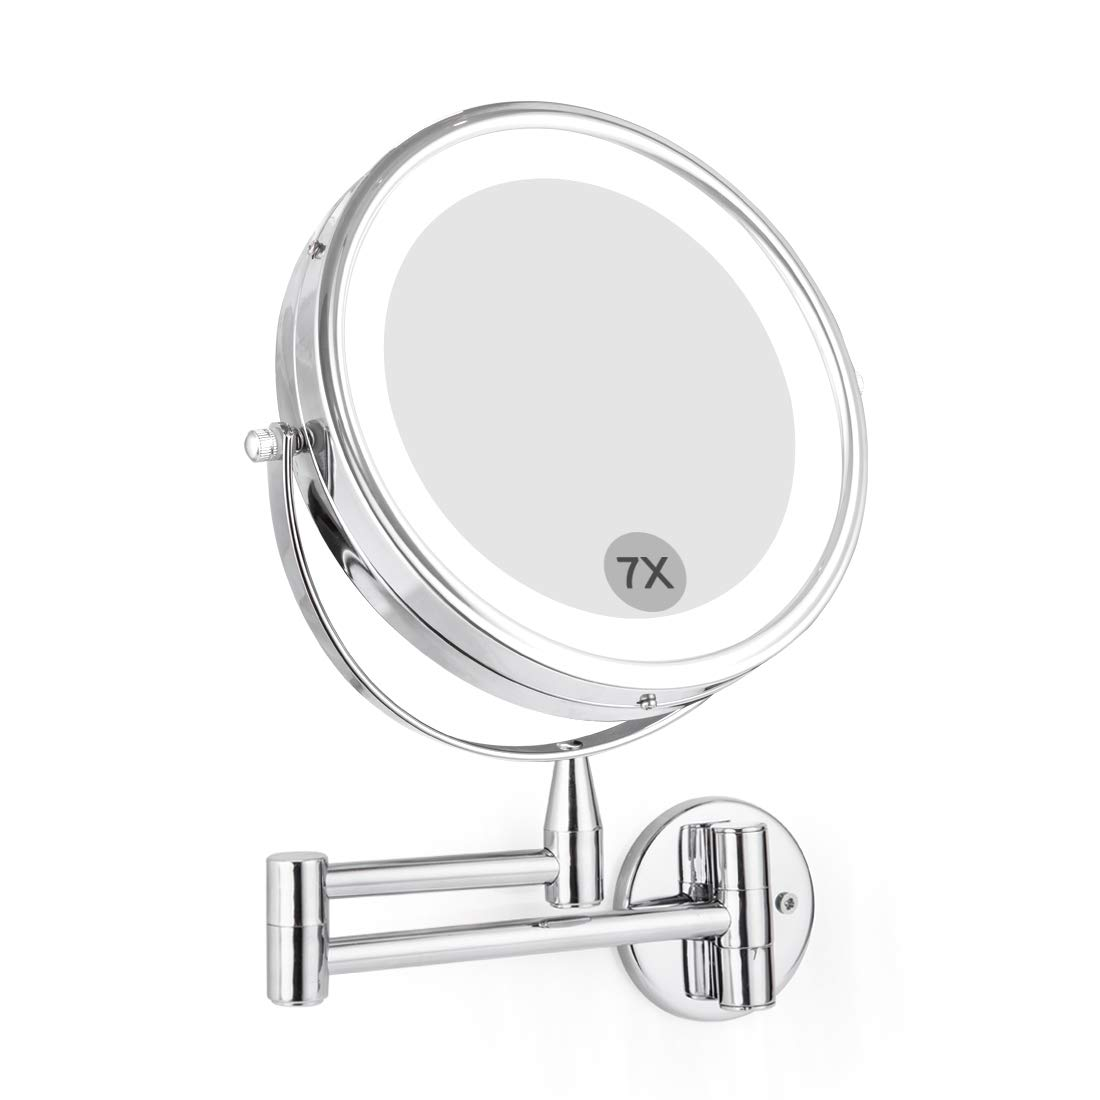 Wall Mounted LED Magnifying Mirror 7X Makeup 8'' Lighted Double Side 360 Degree Vanity Magnification Swivel Extendable Mirror (1X/7X, with light) by FIRMLOC